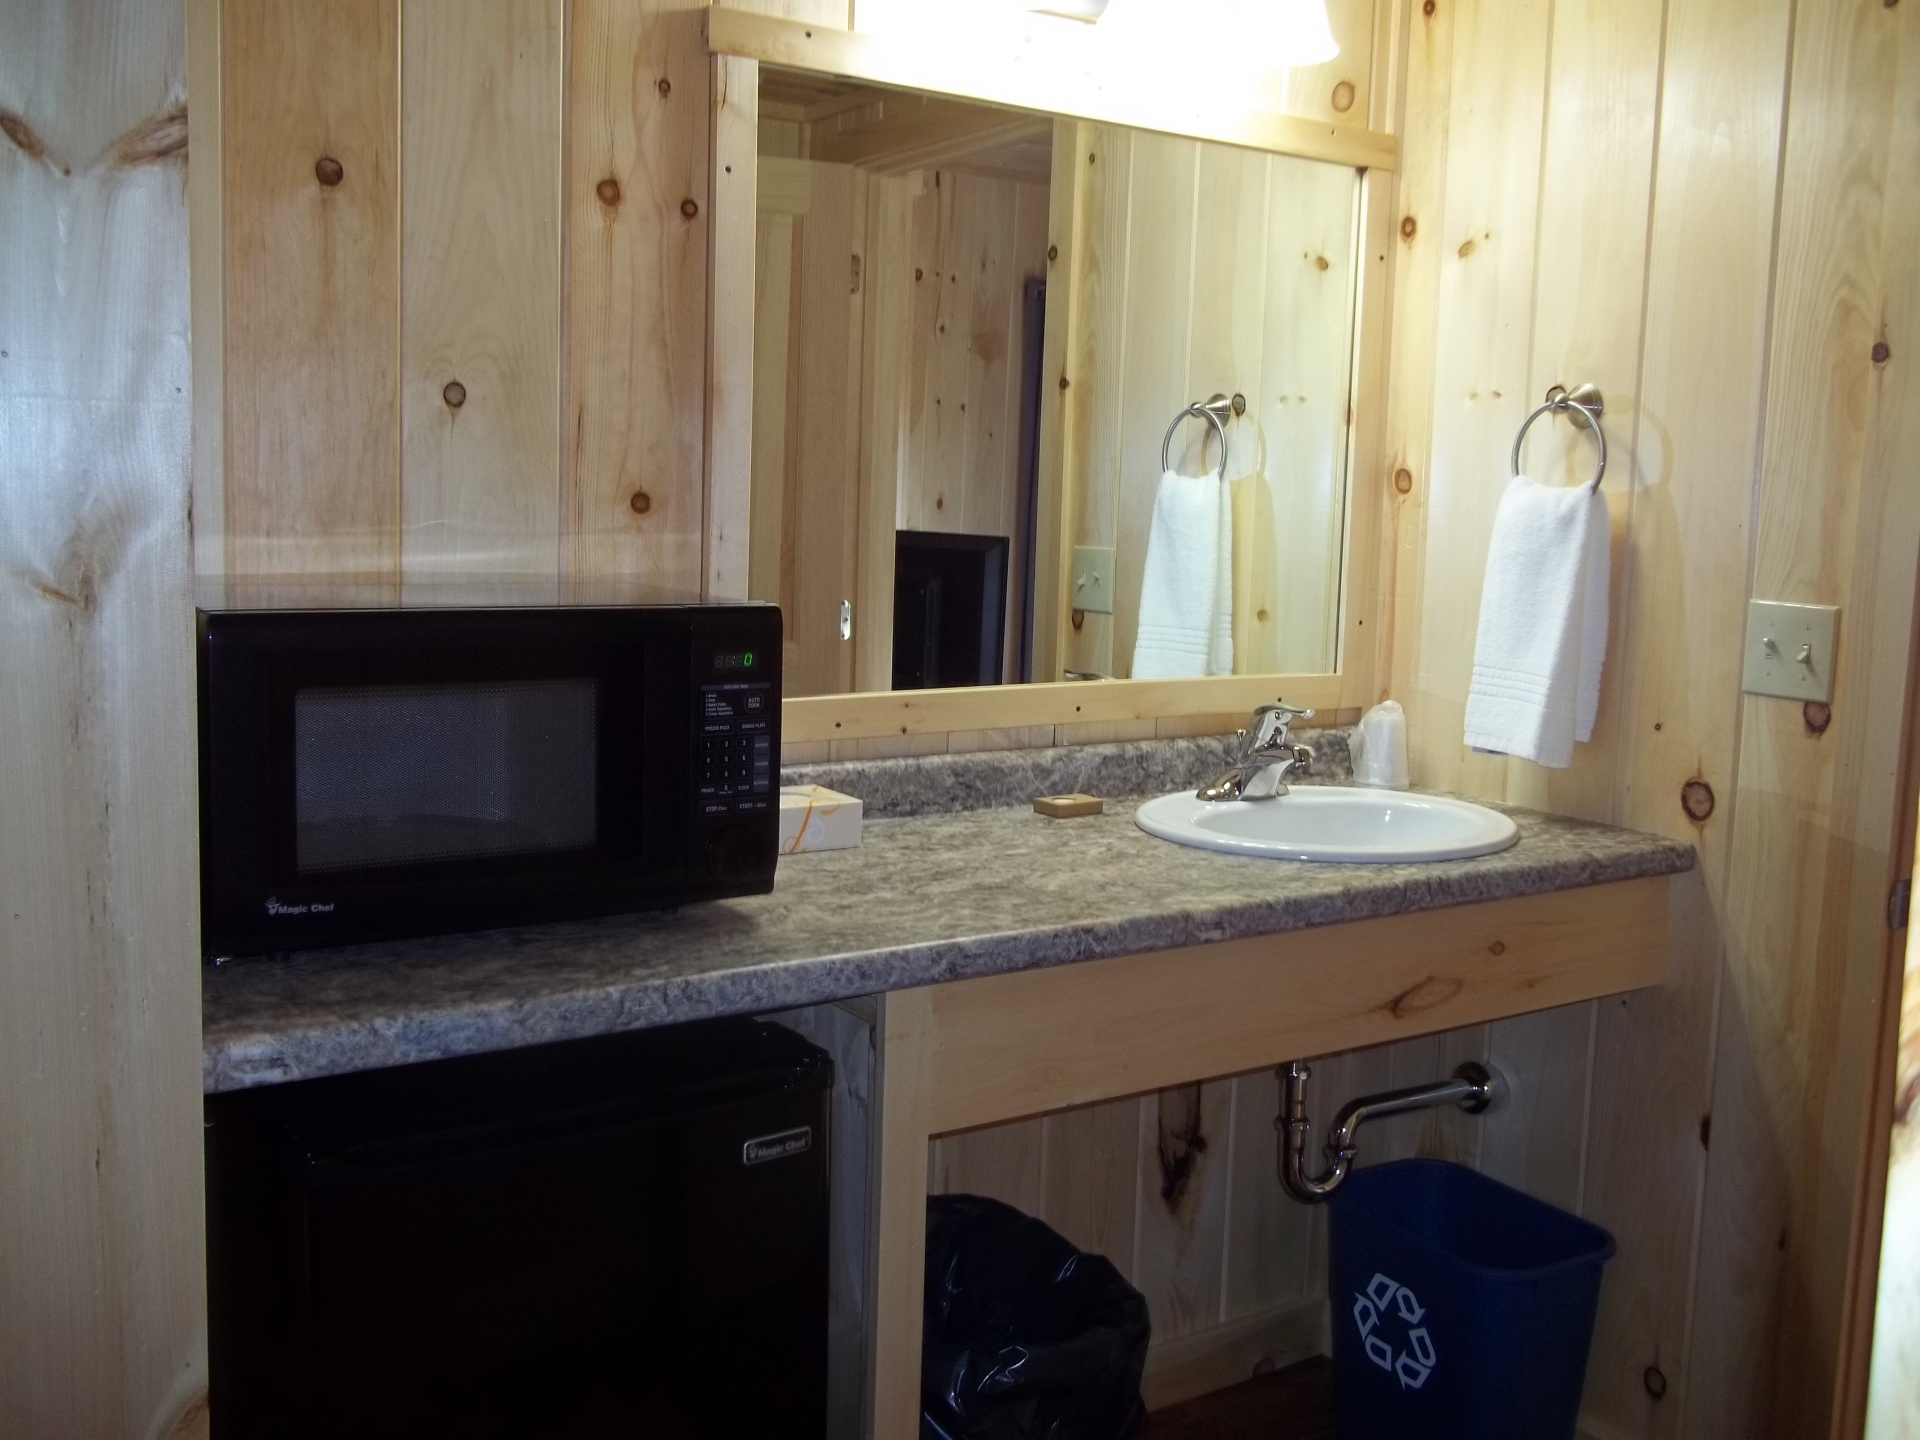 Fridge, Microwave and Sink area of Suite